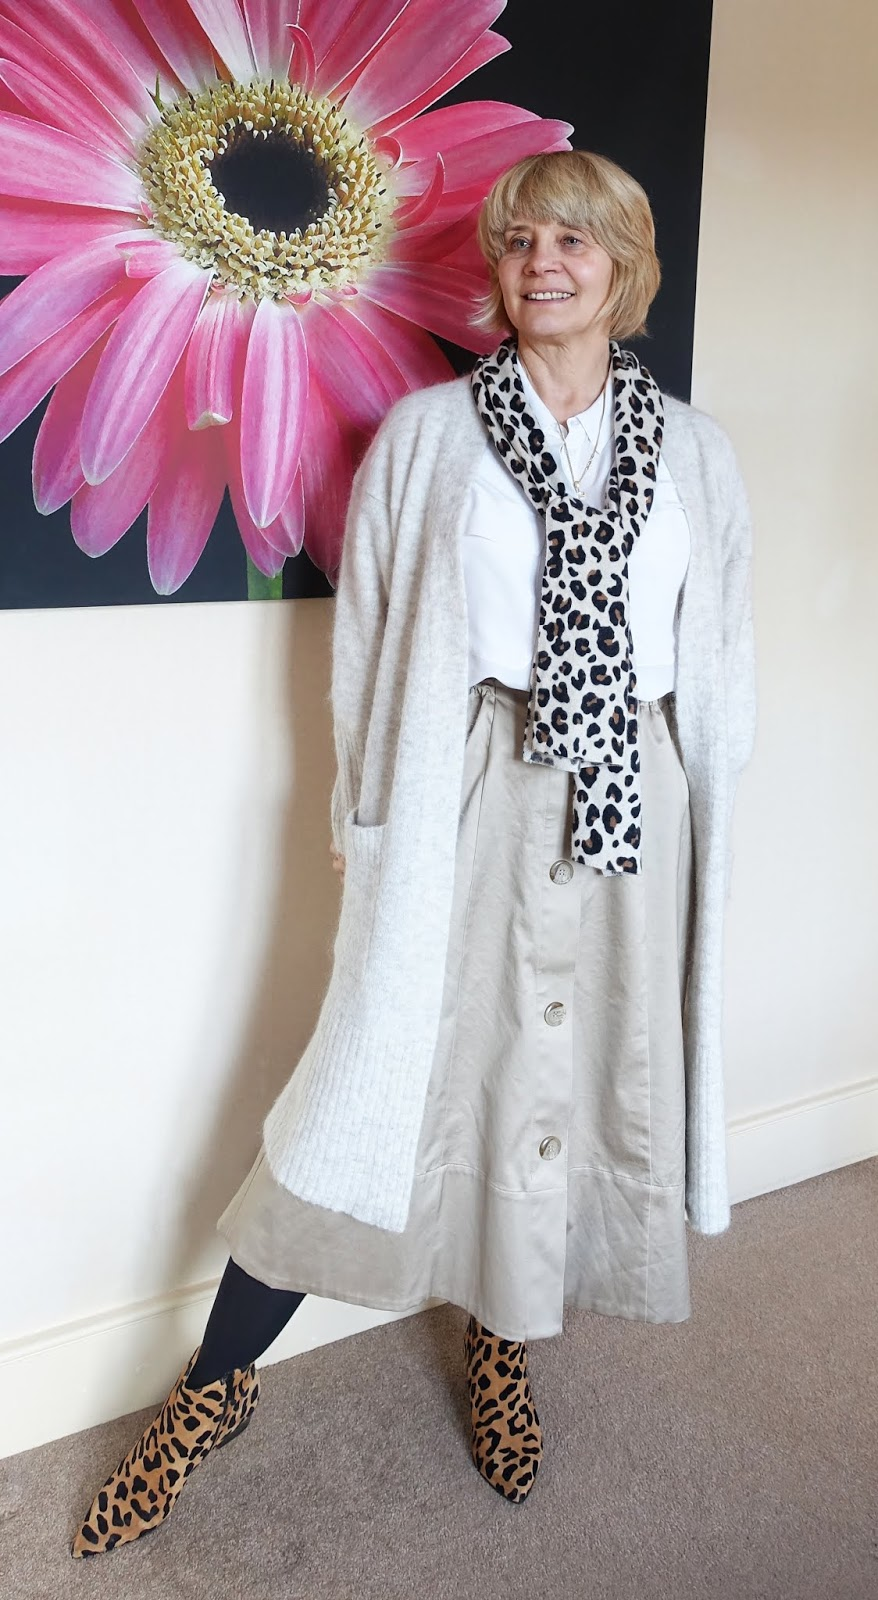 Adding a leopard print scarf lifts an outfit of fawn midi skirt, white blouse and long ivory cardigan